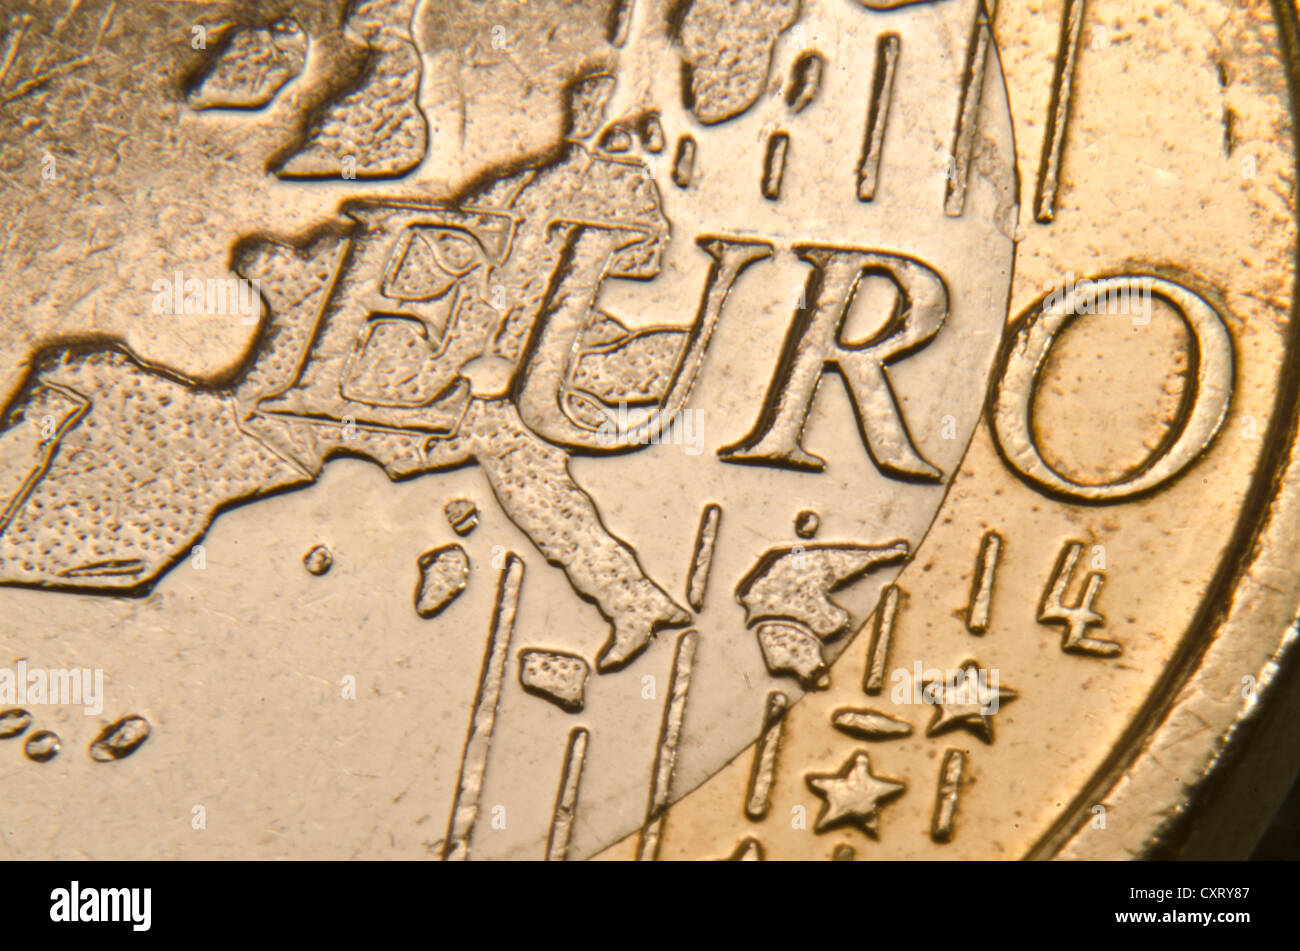 Euro coin, extreme close-up - Stock Image